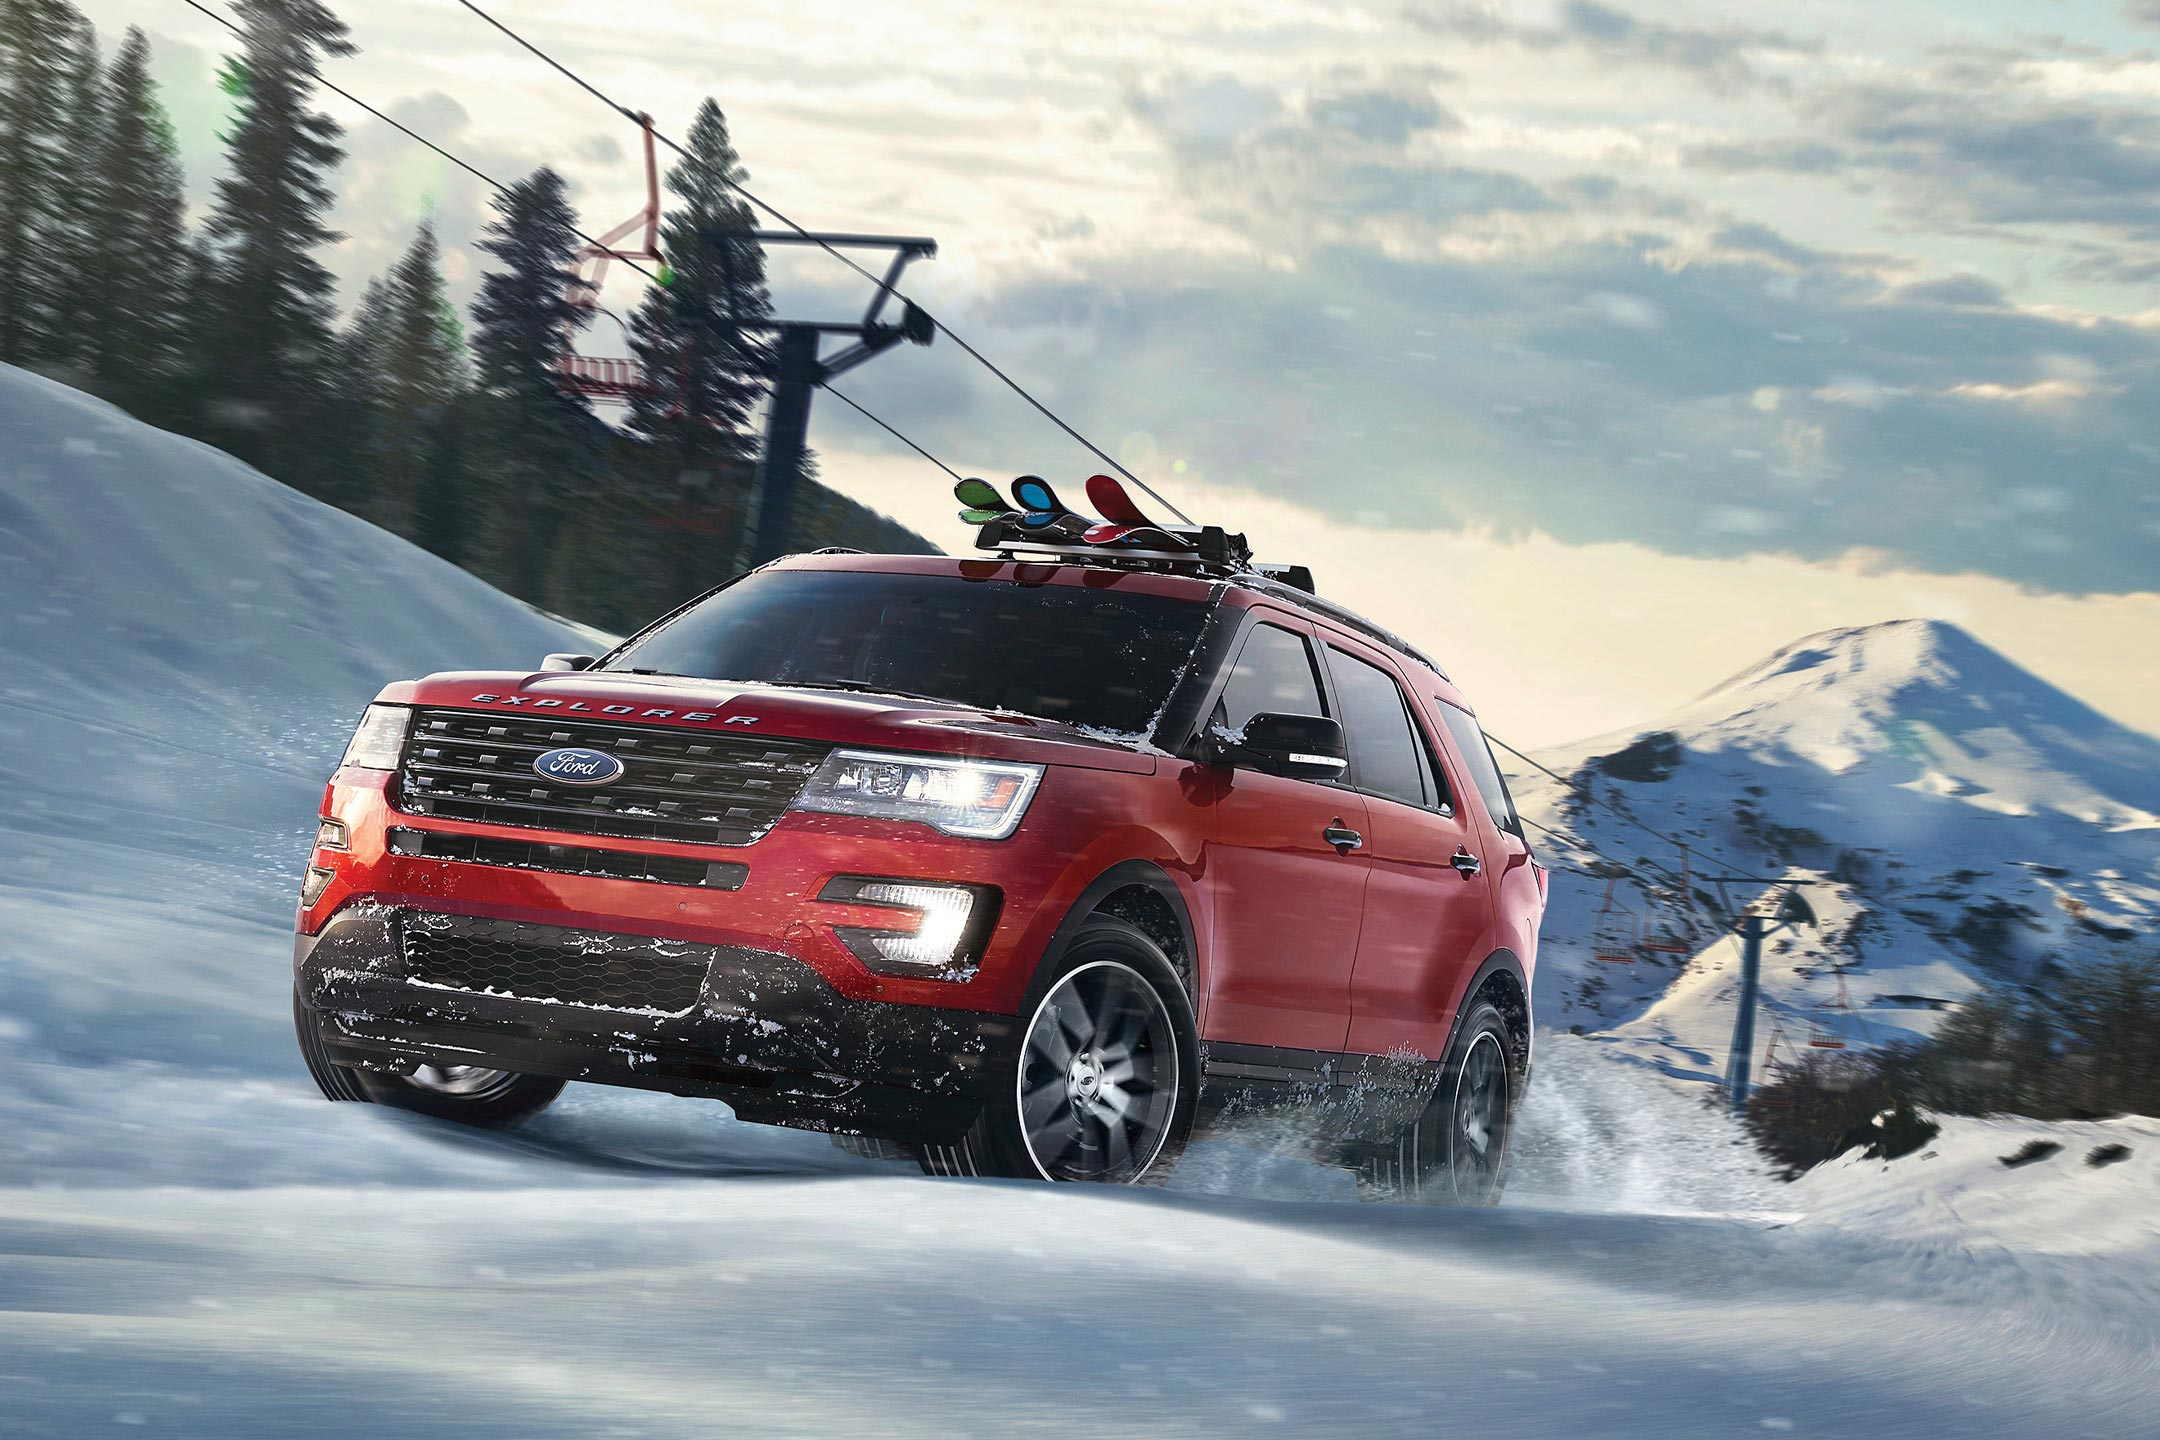 2017 Ford Explorer Overview The News Wheel